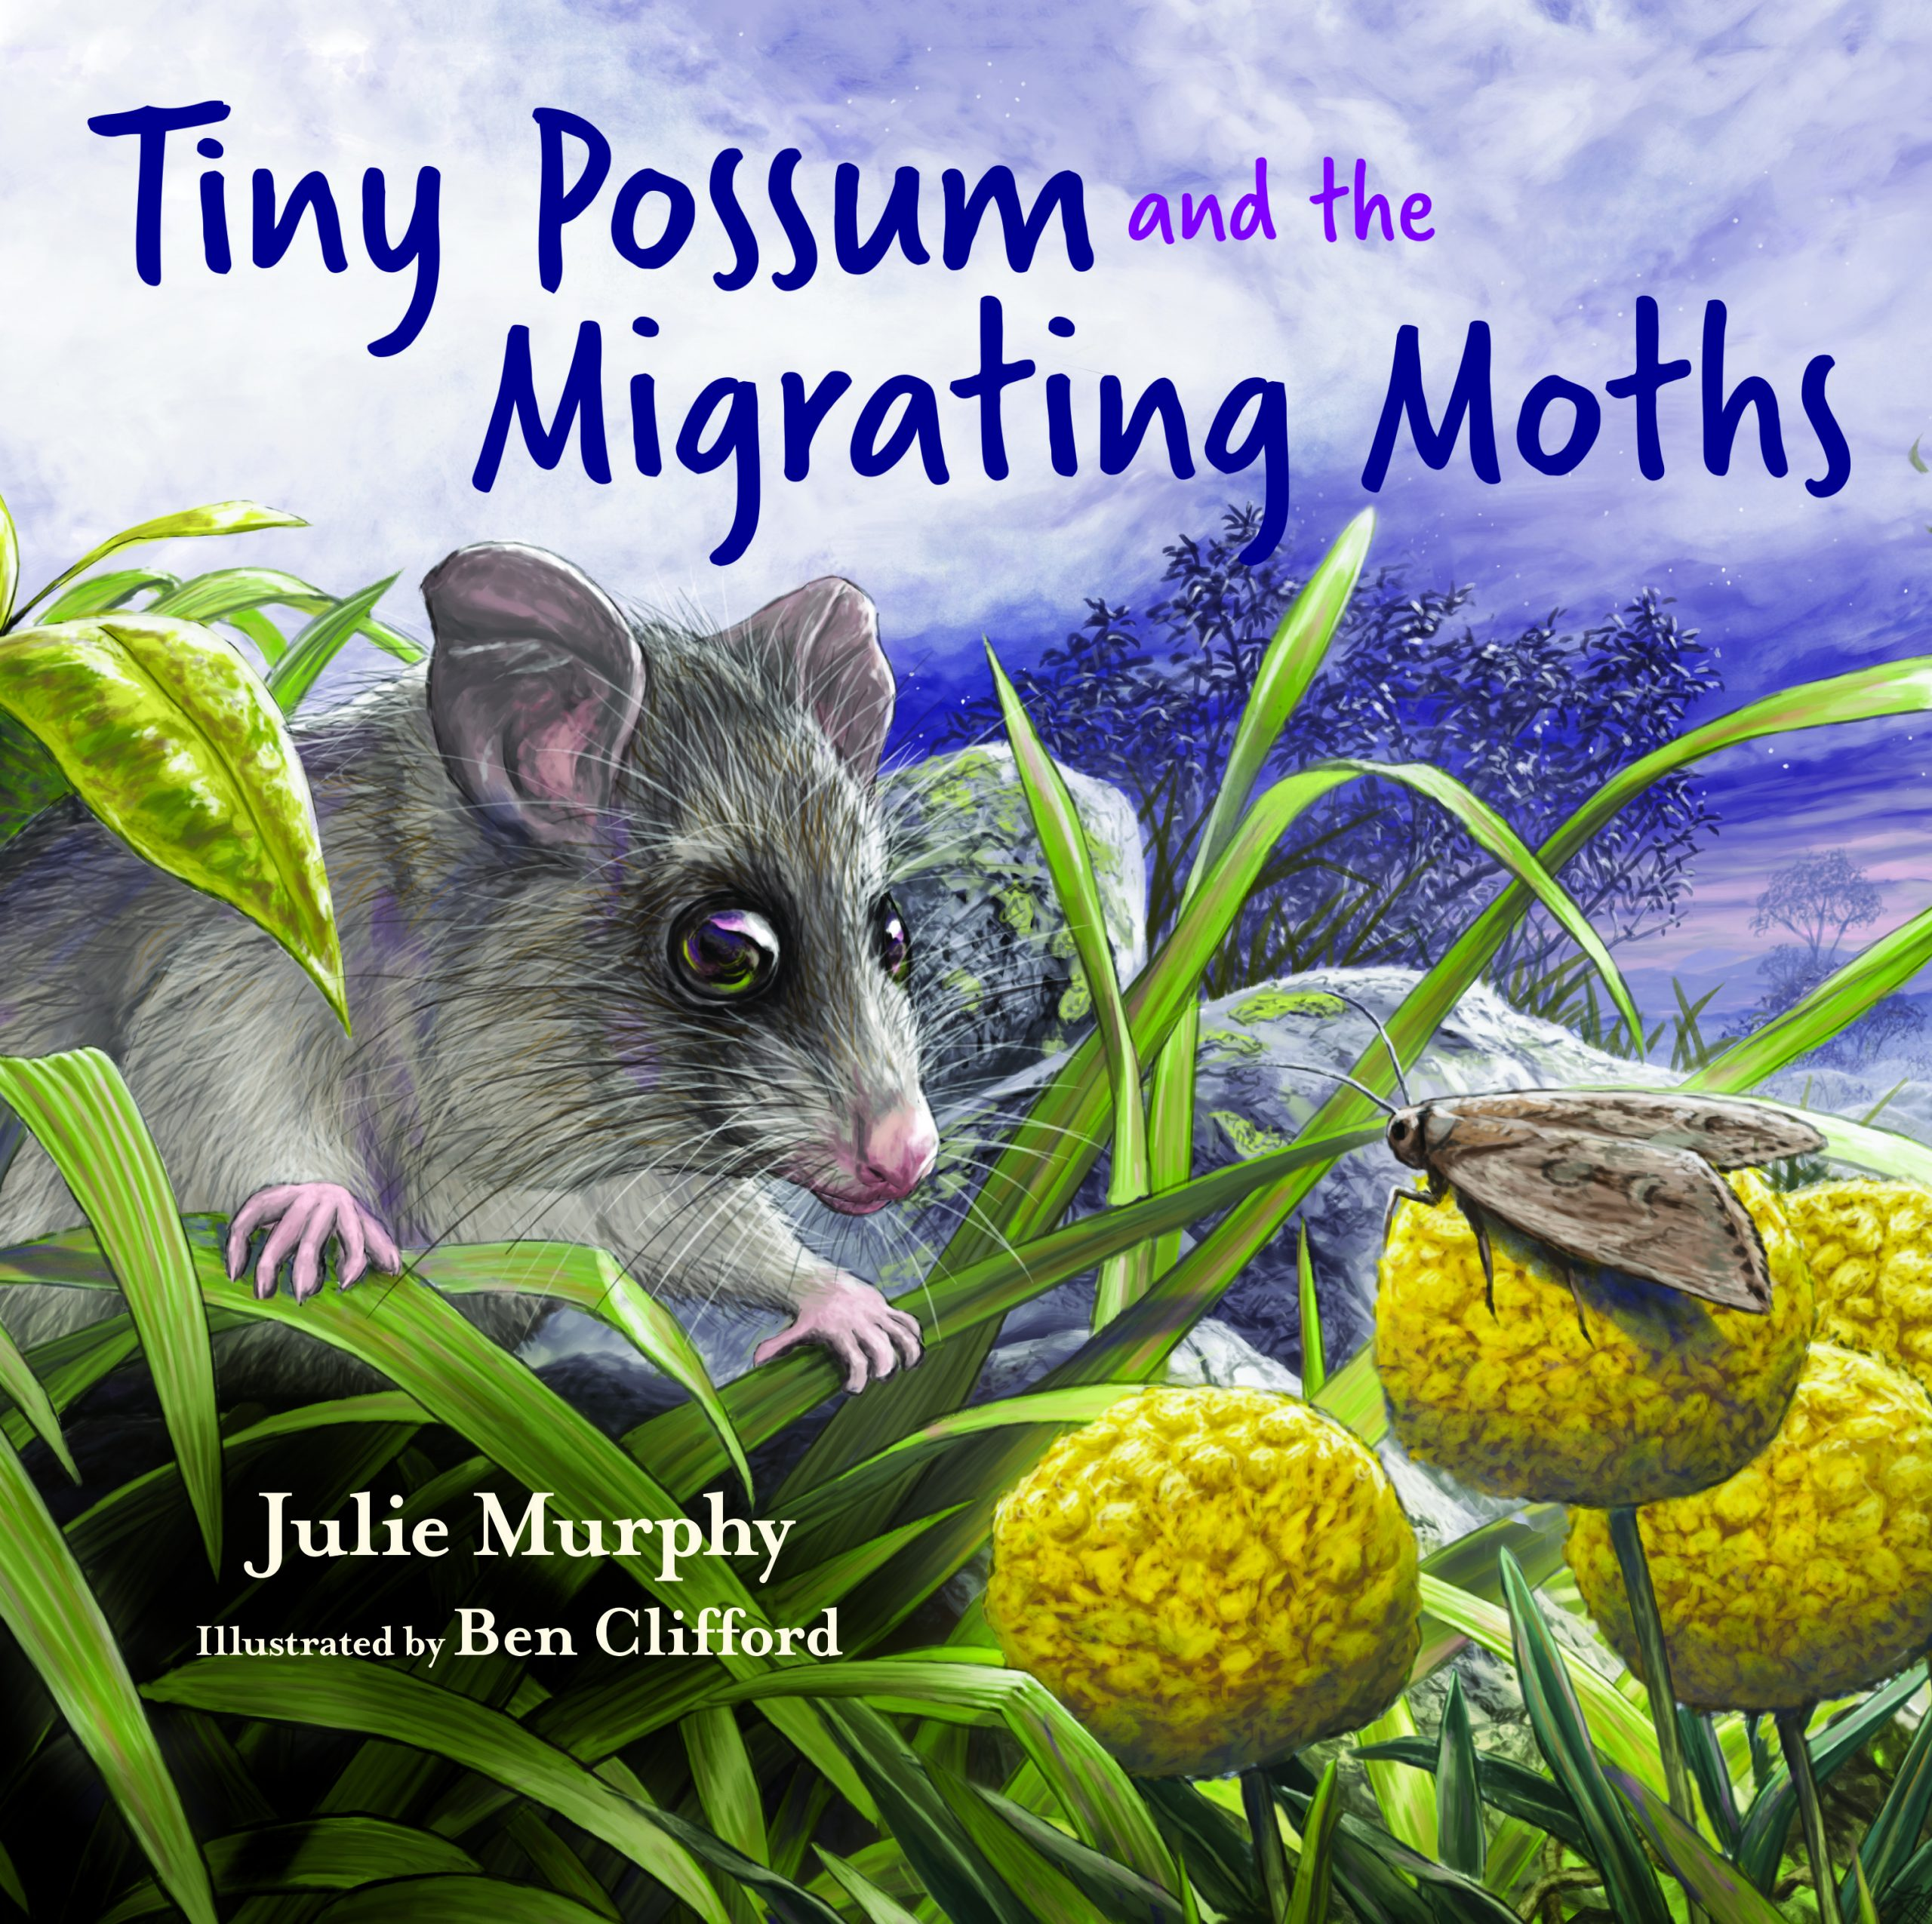 Cover of Tiny Possum and the Migrating Moths (CSIRO Publishing, 2021)